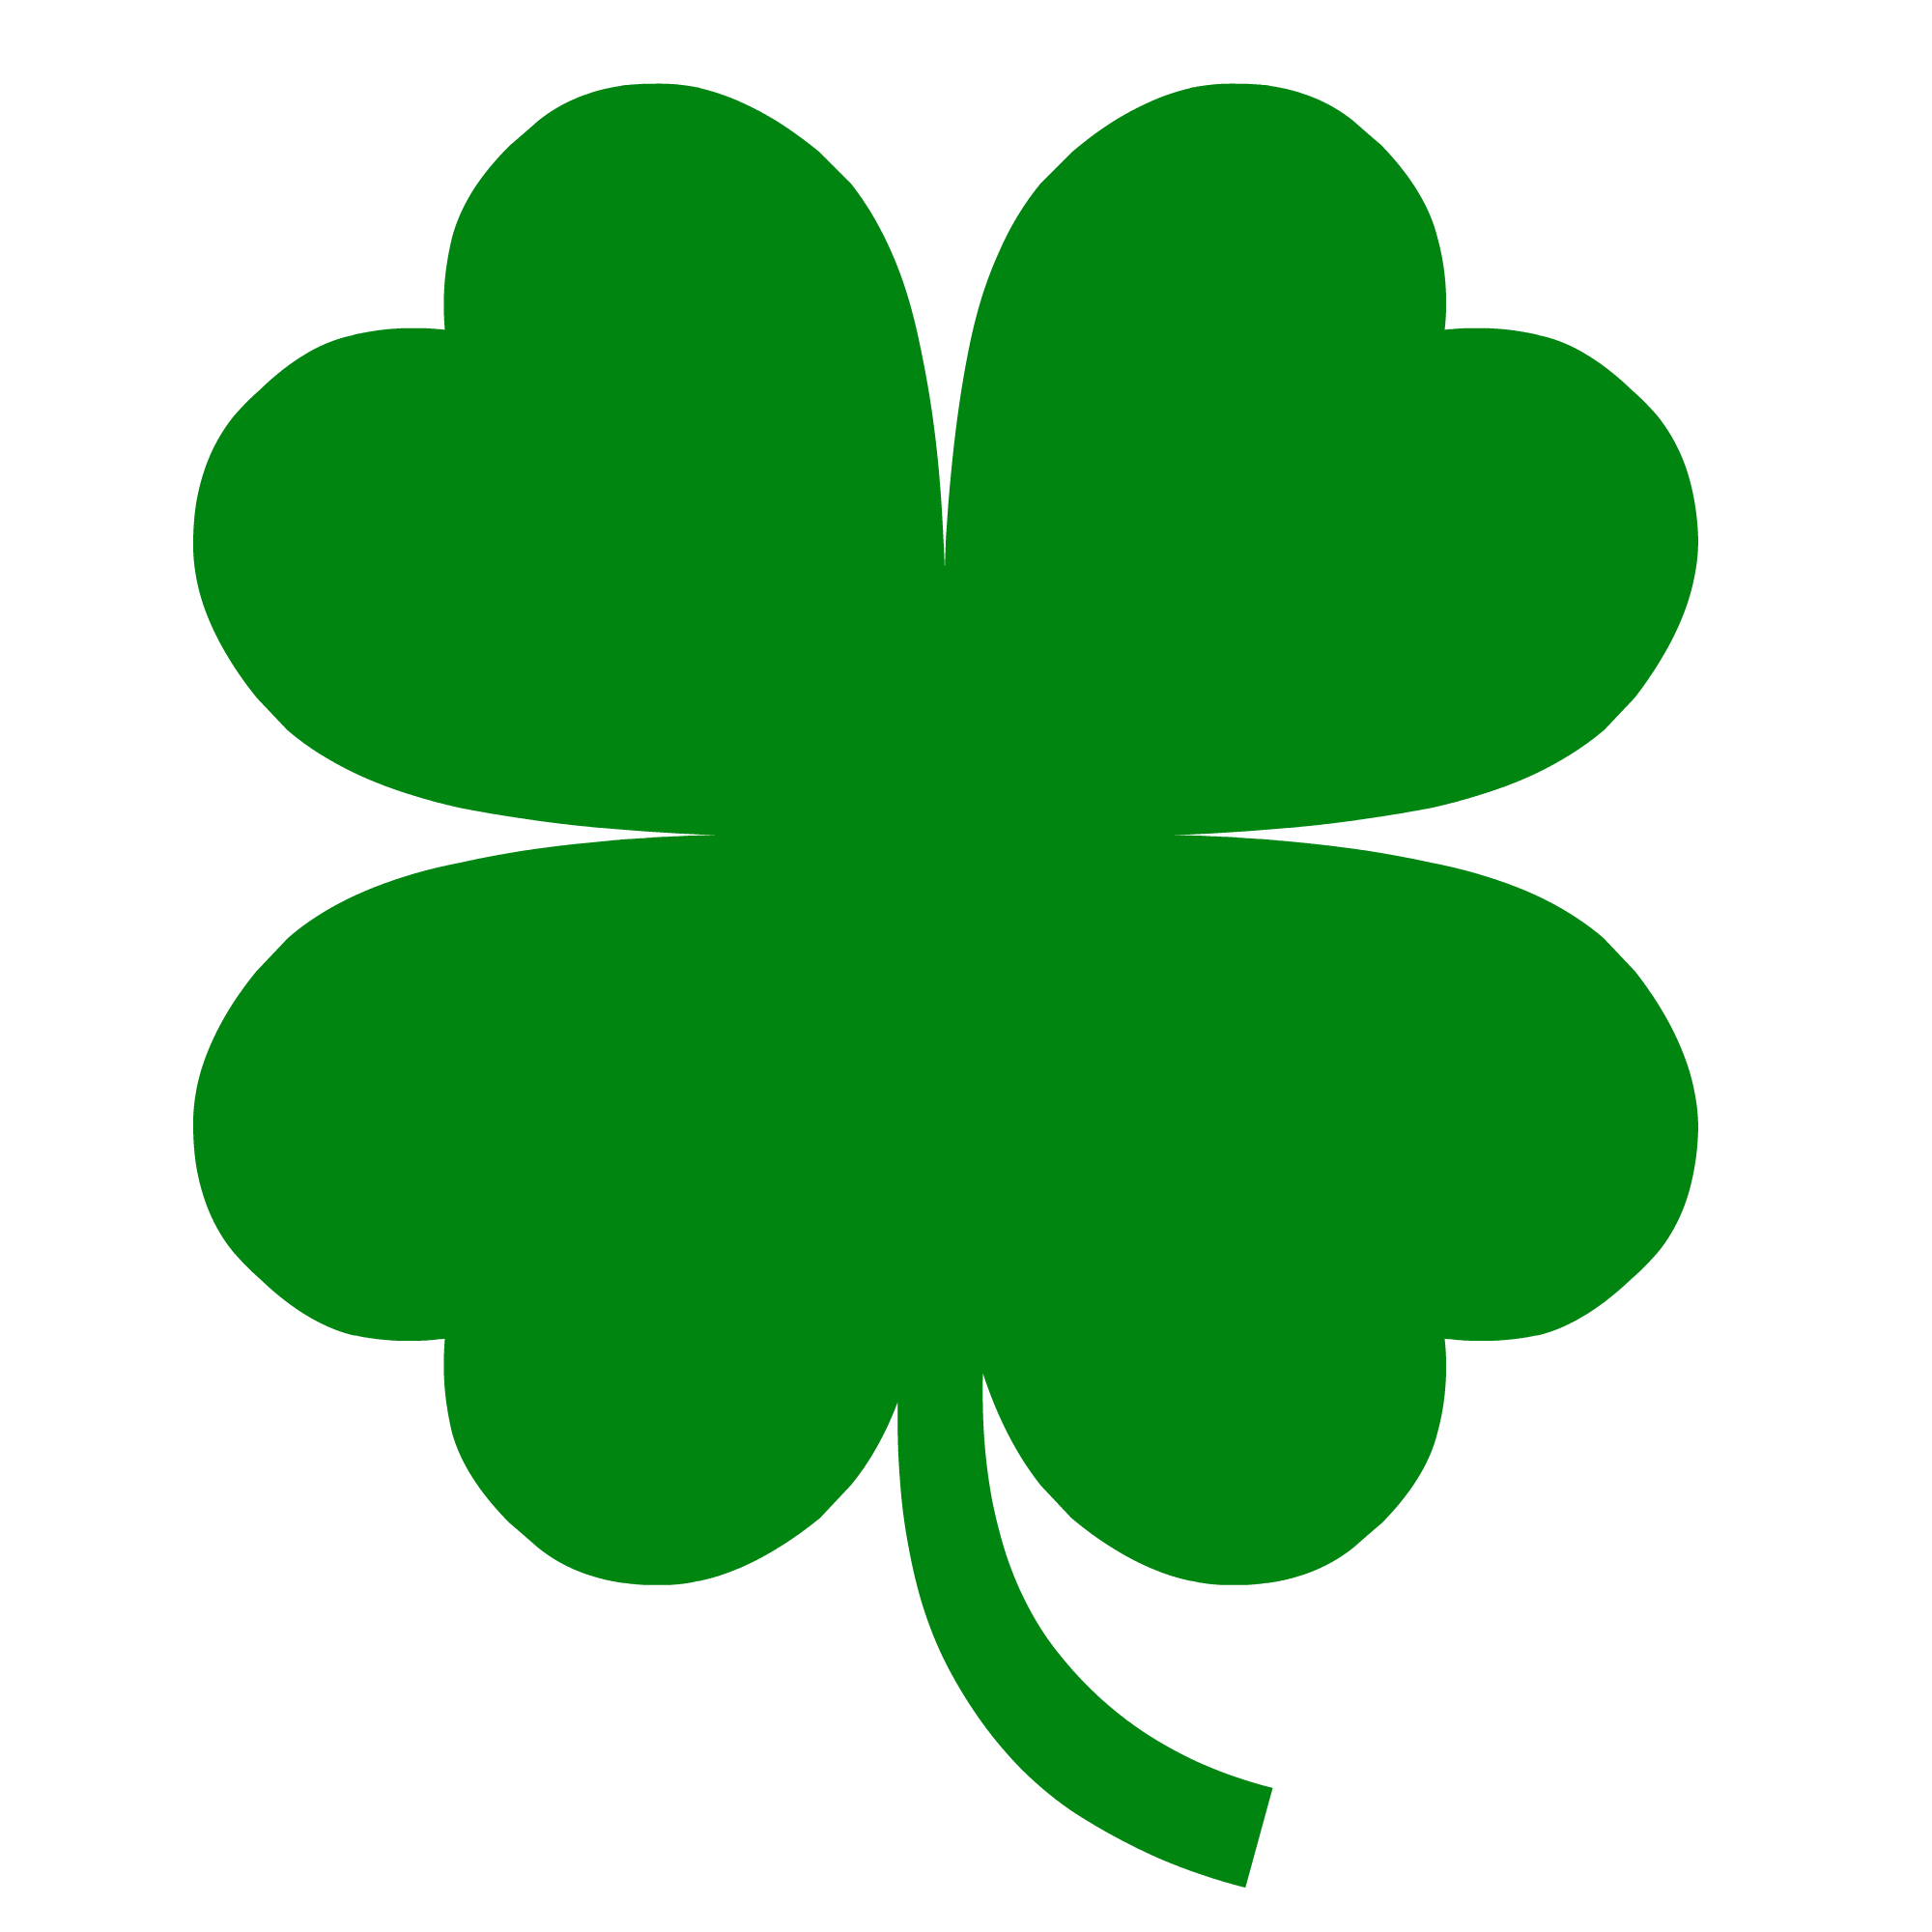 free four leaf clover clipart free download best free clover clipart black and white clover clip art free green spring